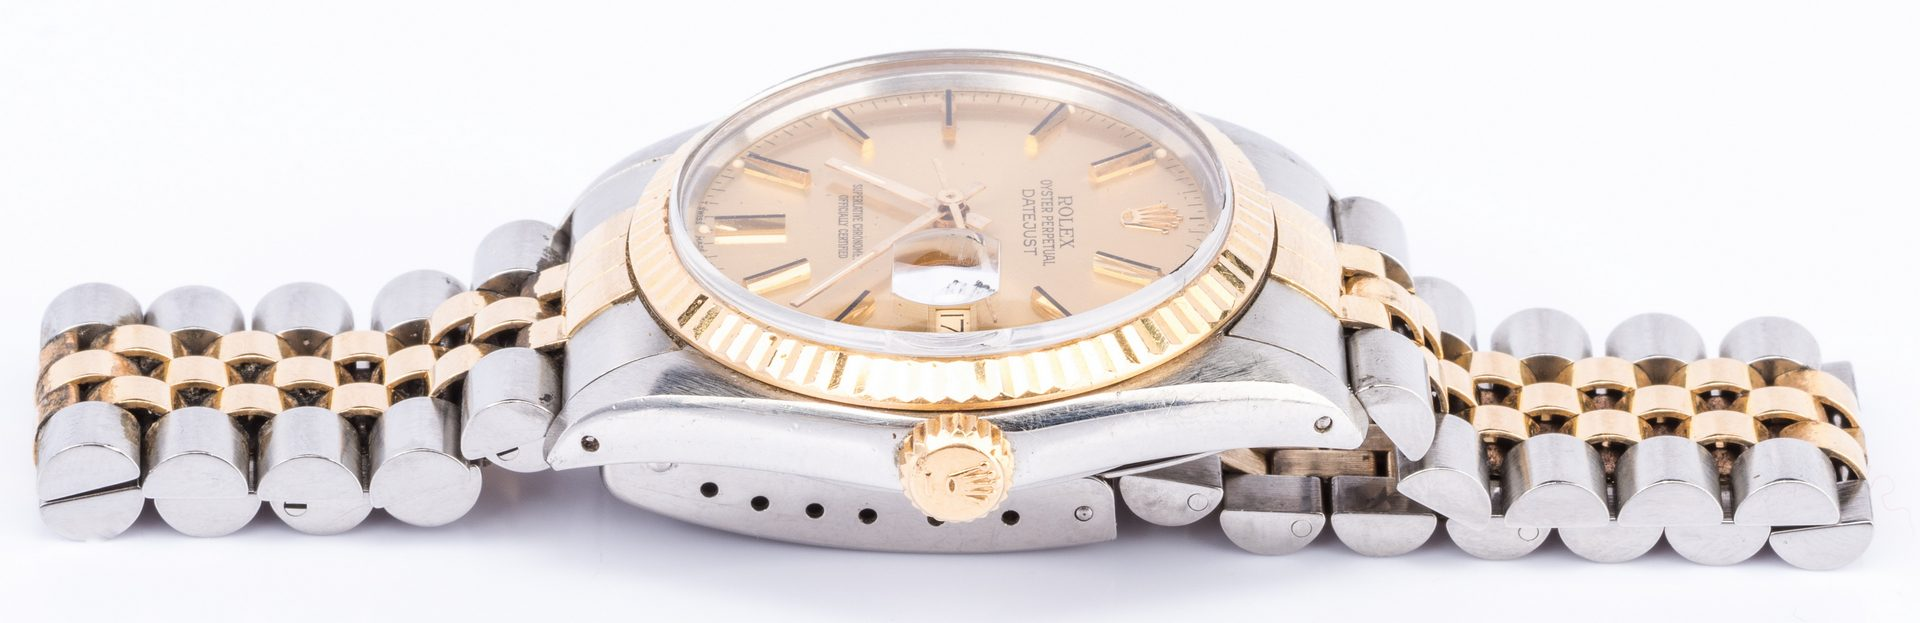 Lot 56: Rolex Datejust Gents Watch Steel/gold